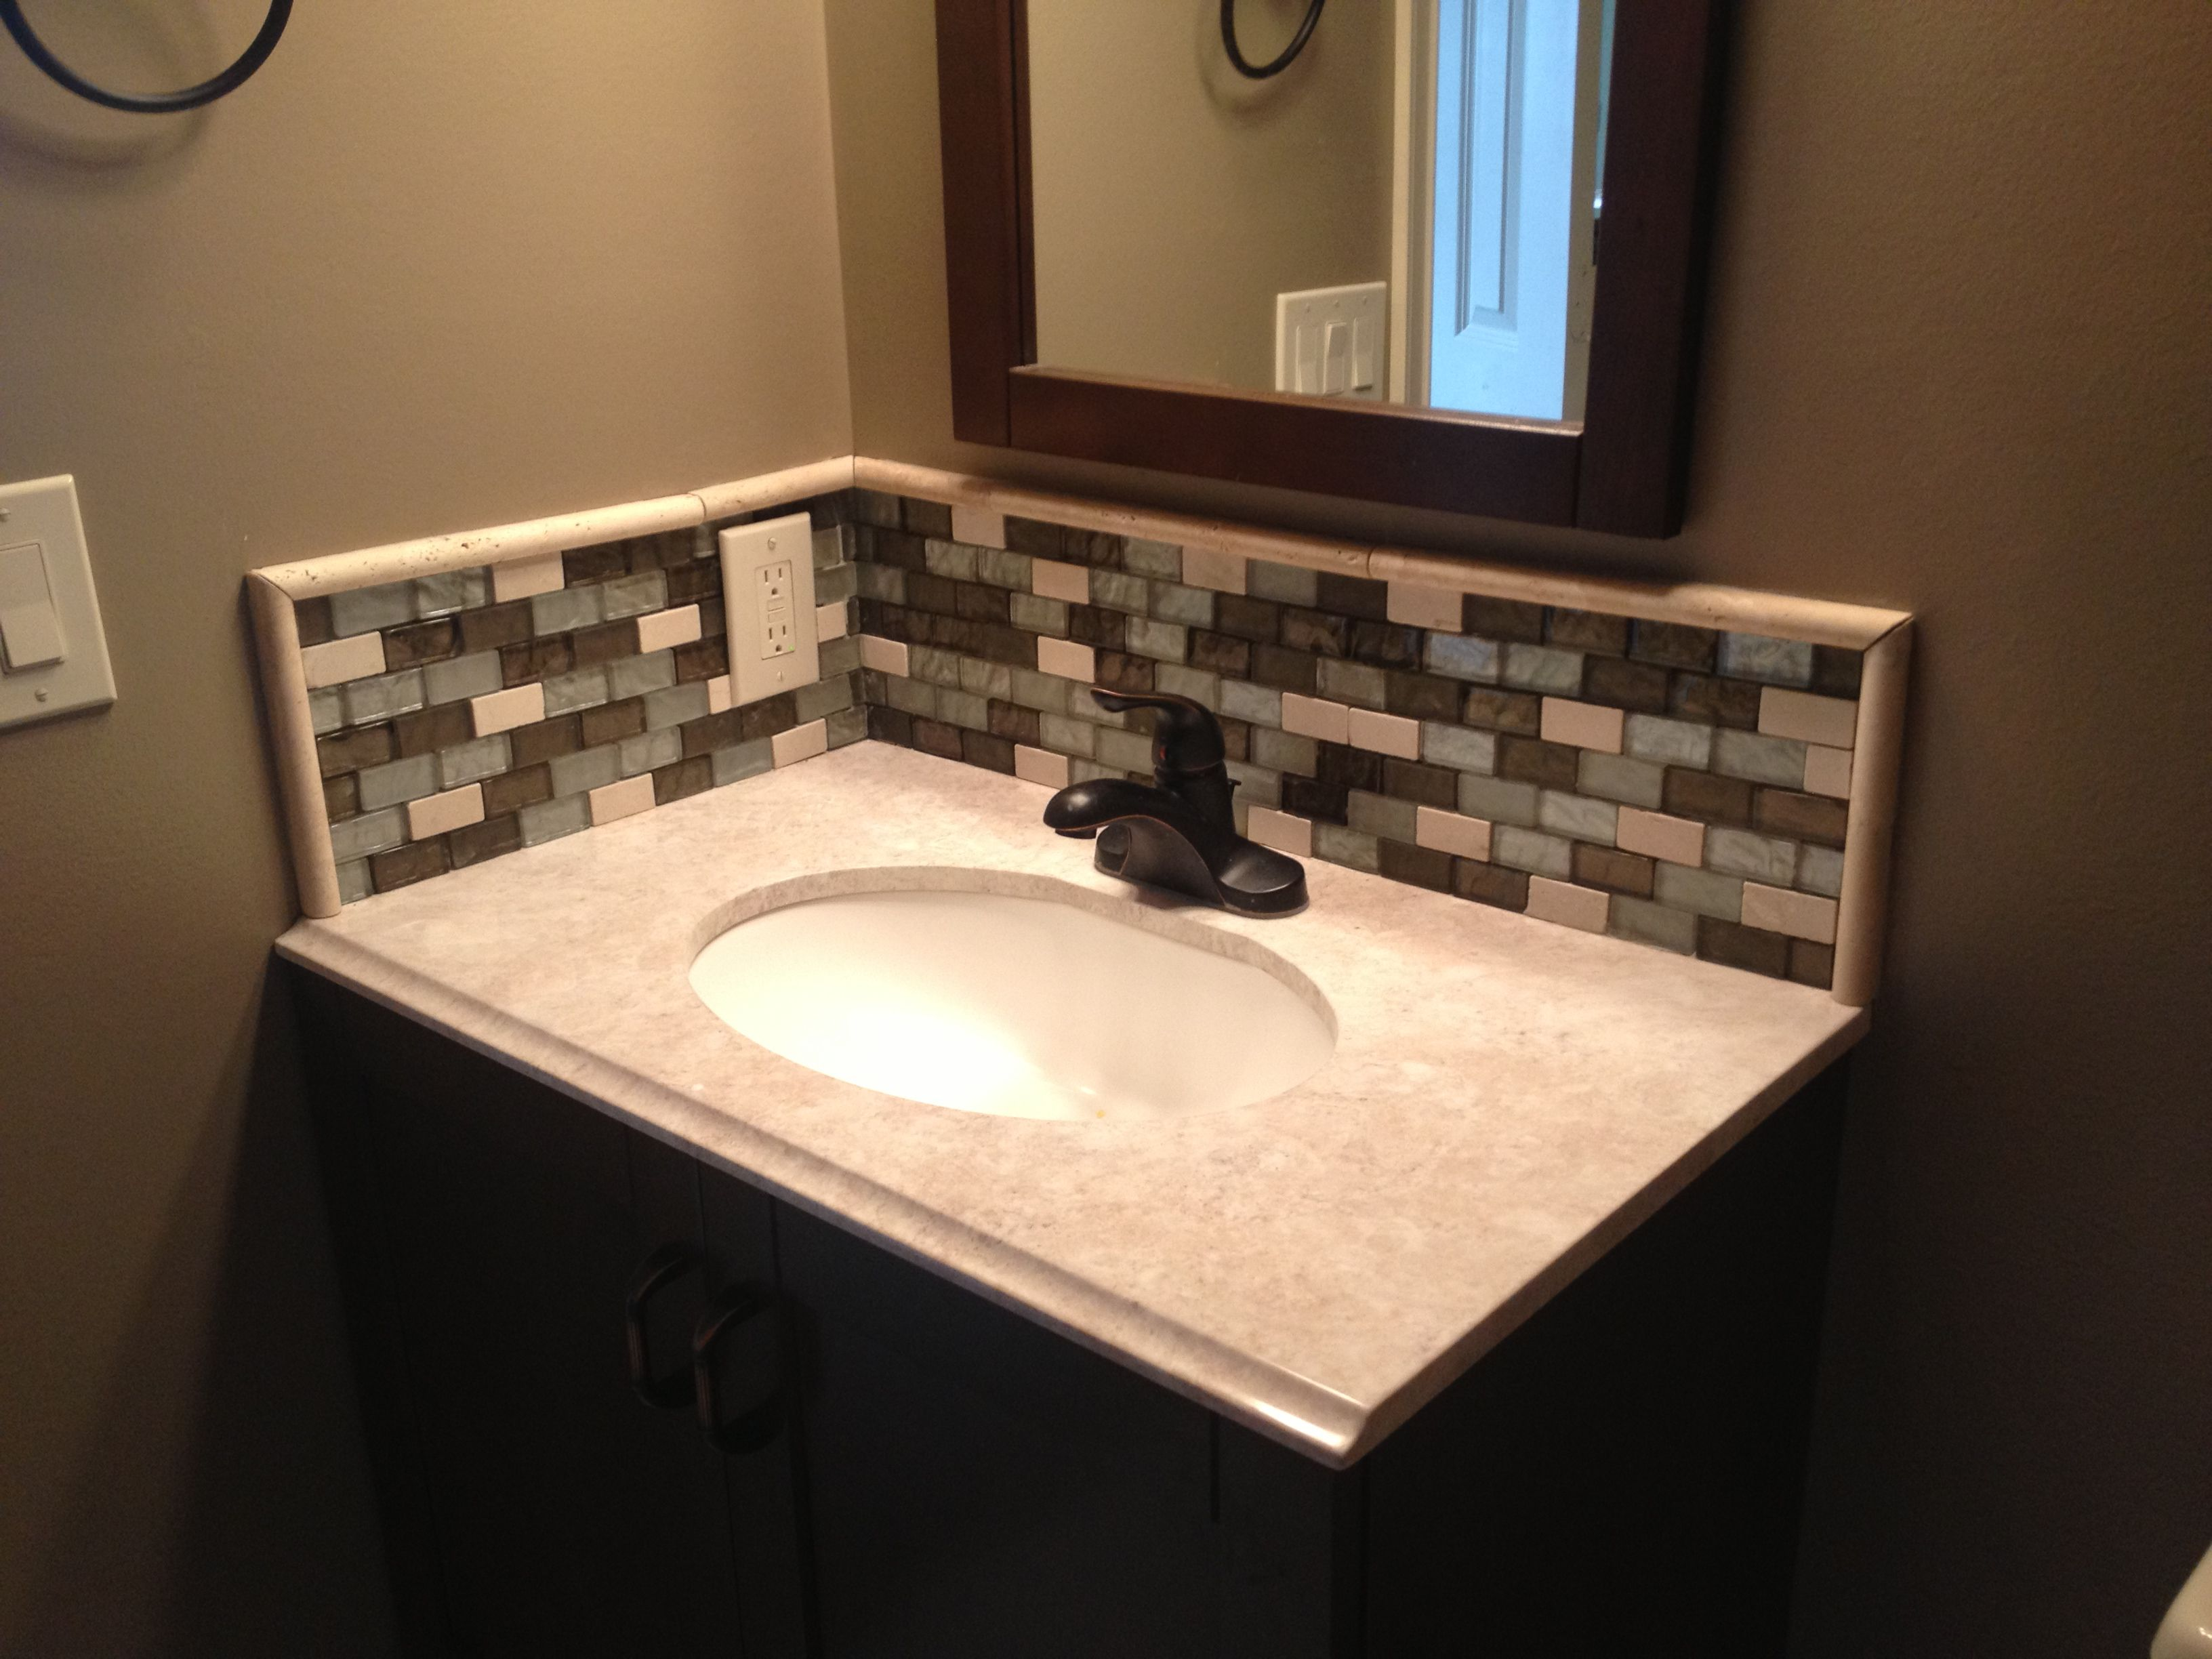 Splendid design glass mosaic bathroom ideas brown gray colors installing tile backsplash your kitchen the wall with level prior best free home design idea inspiration doublecrazyfo Image collections